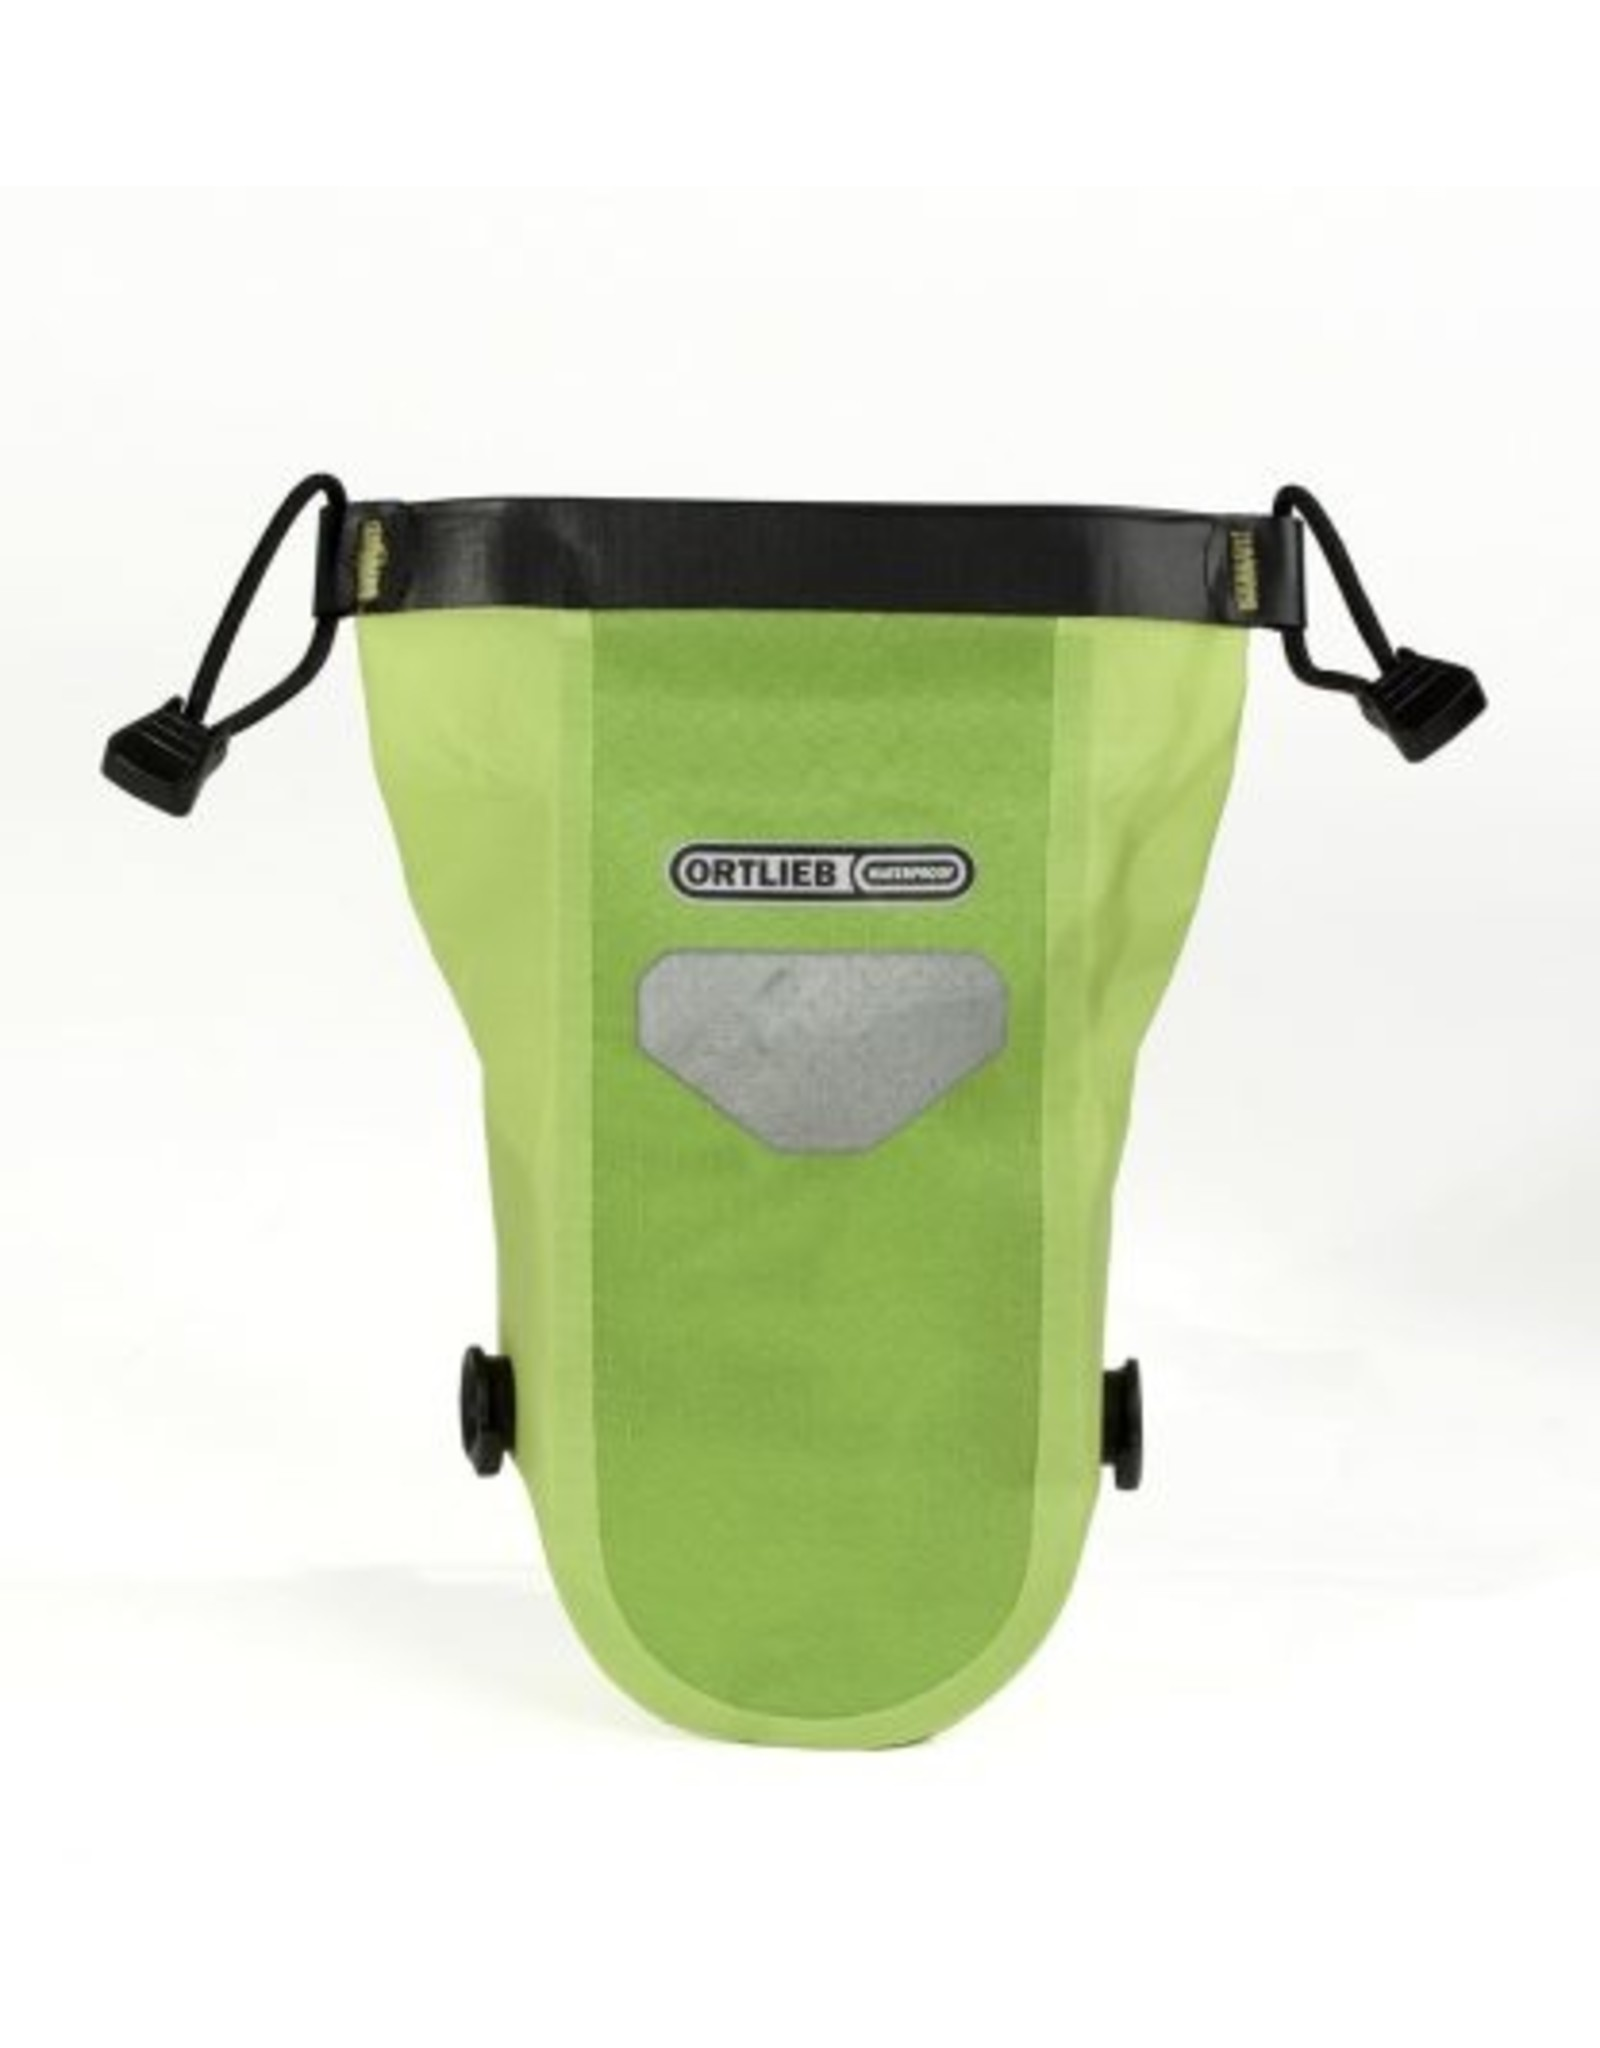 Ortlieb Micro Two Seat Pack (0.5L)